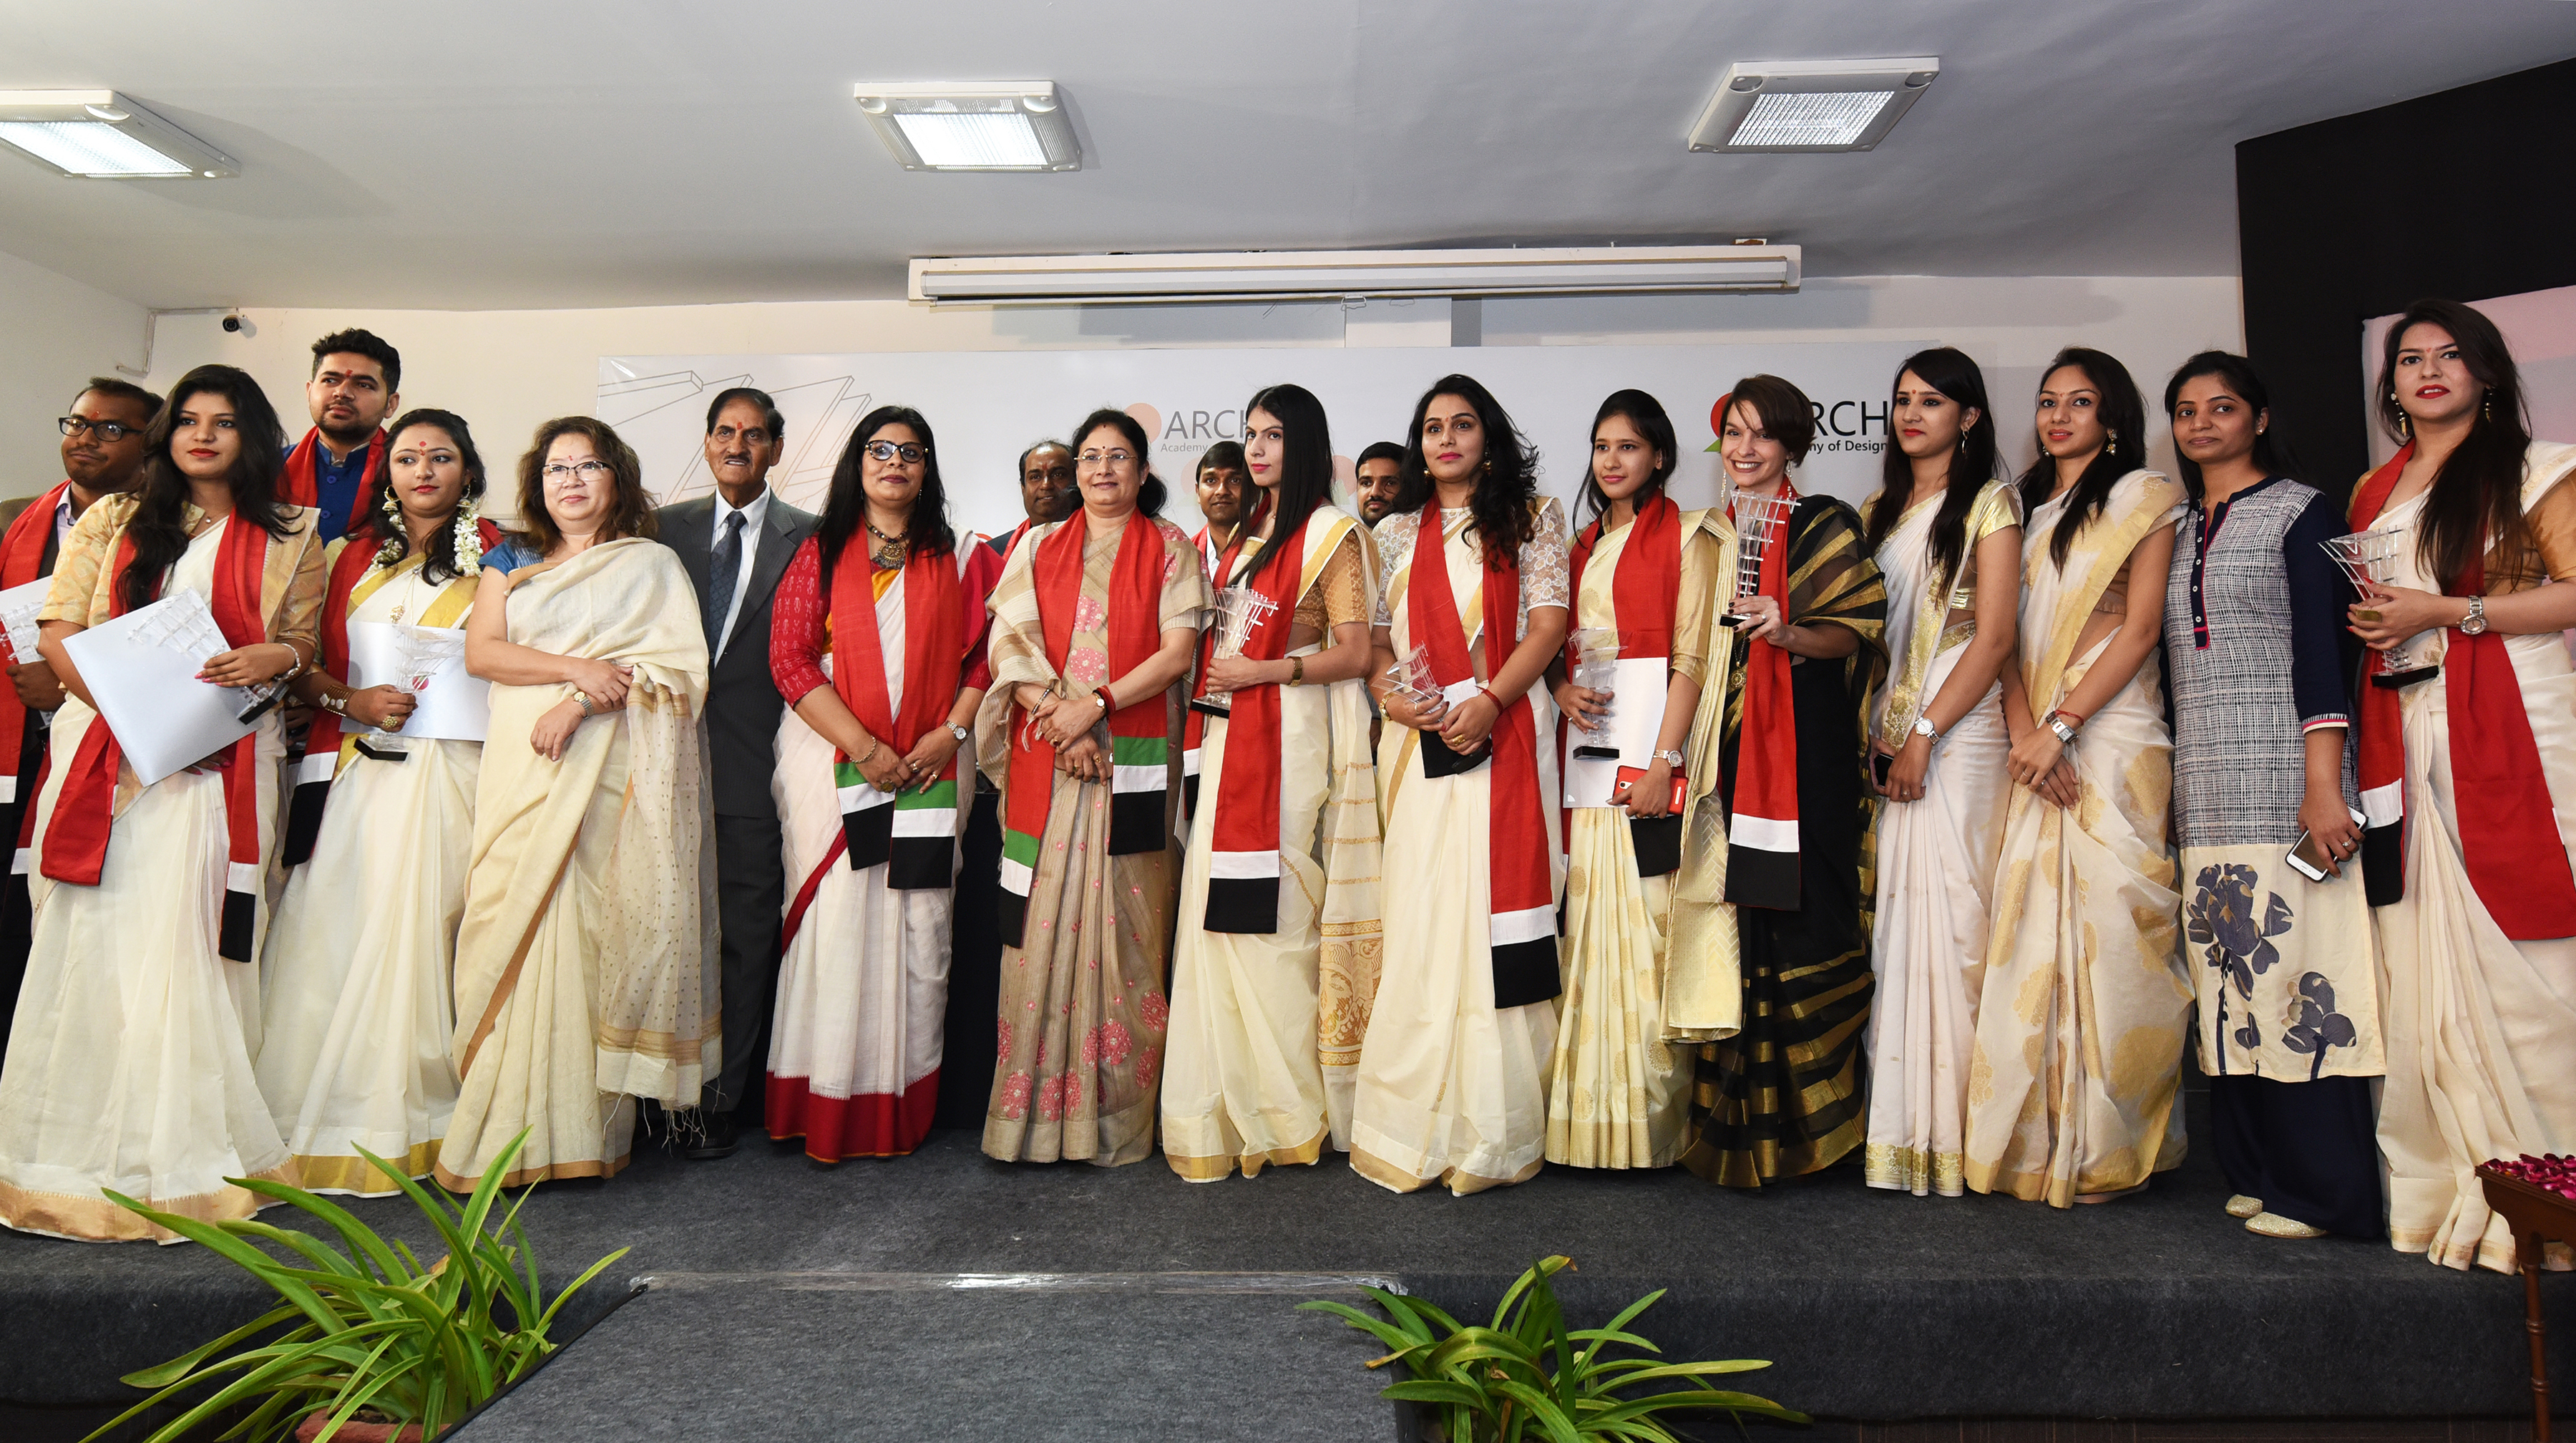 Arch Academy of Design 15th Convocation